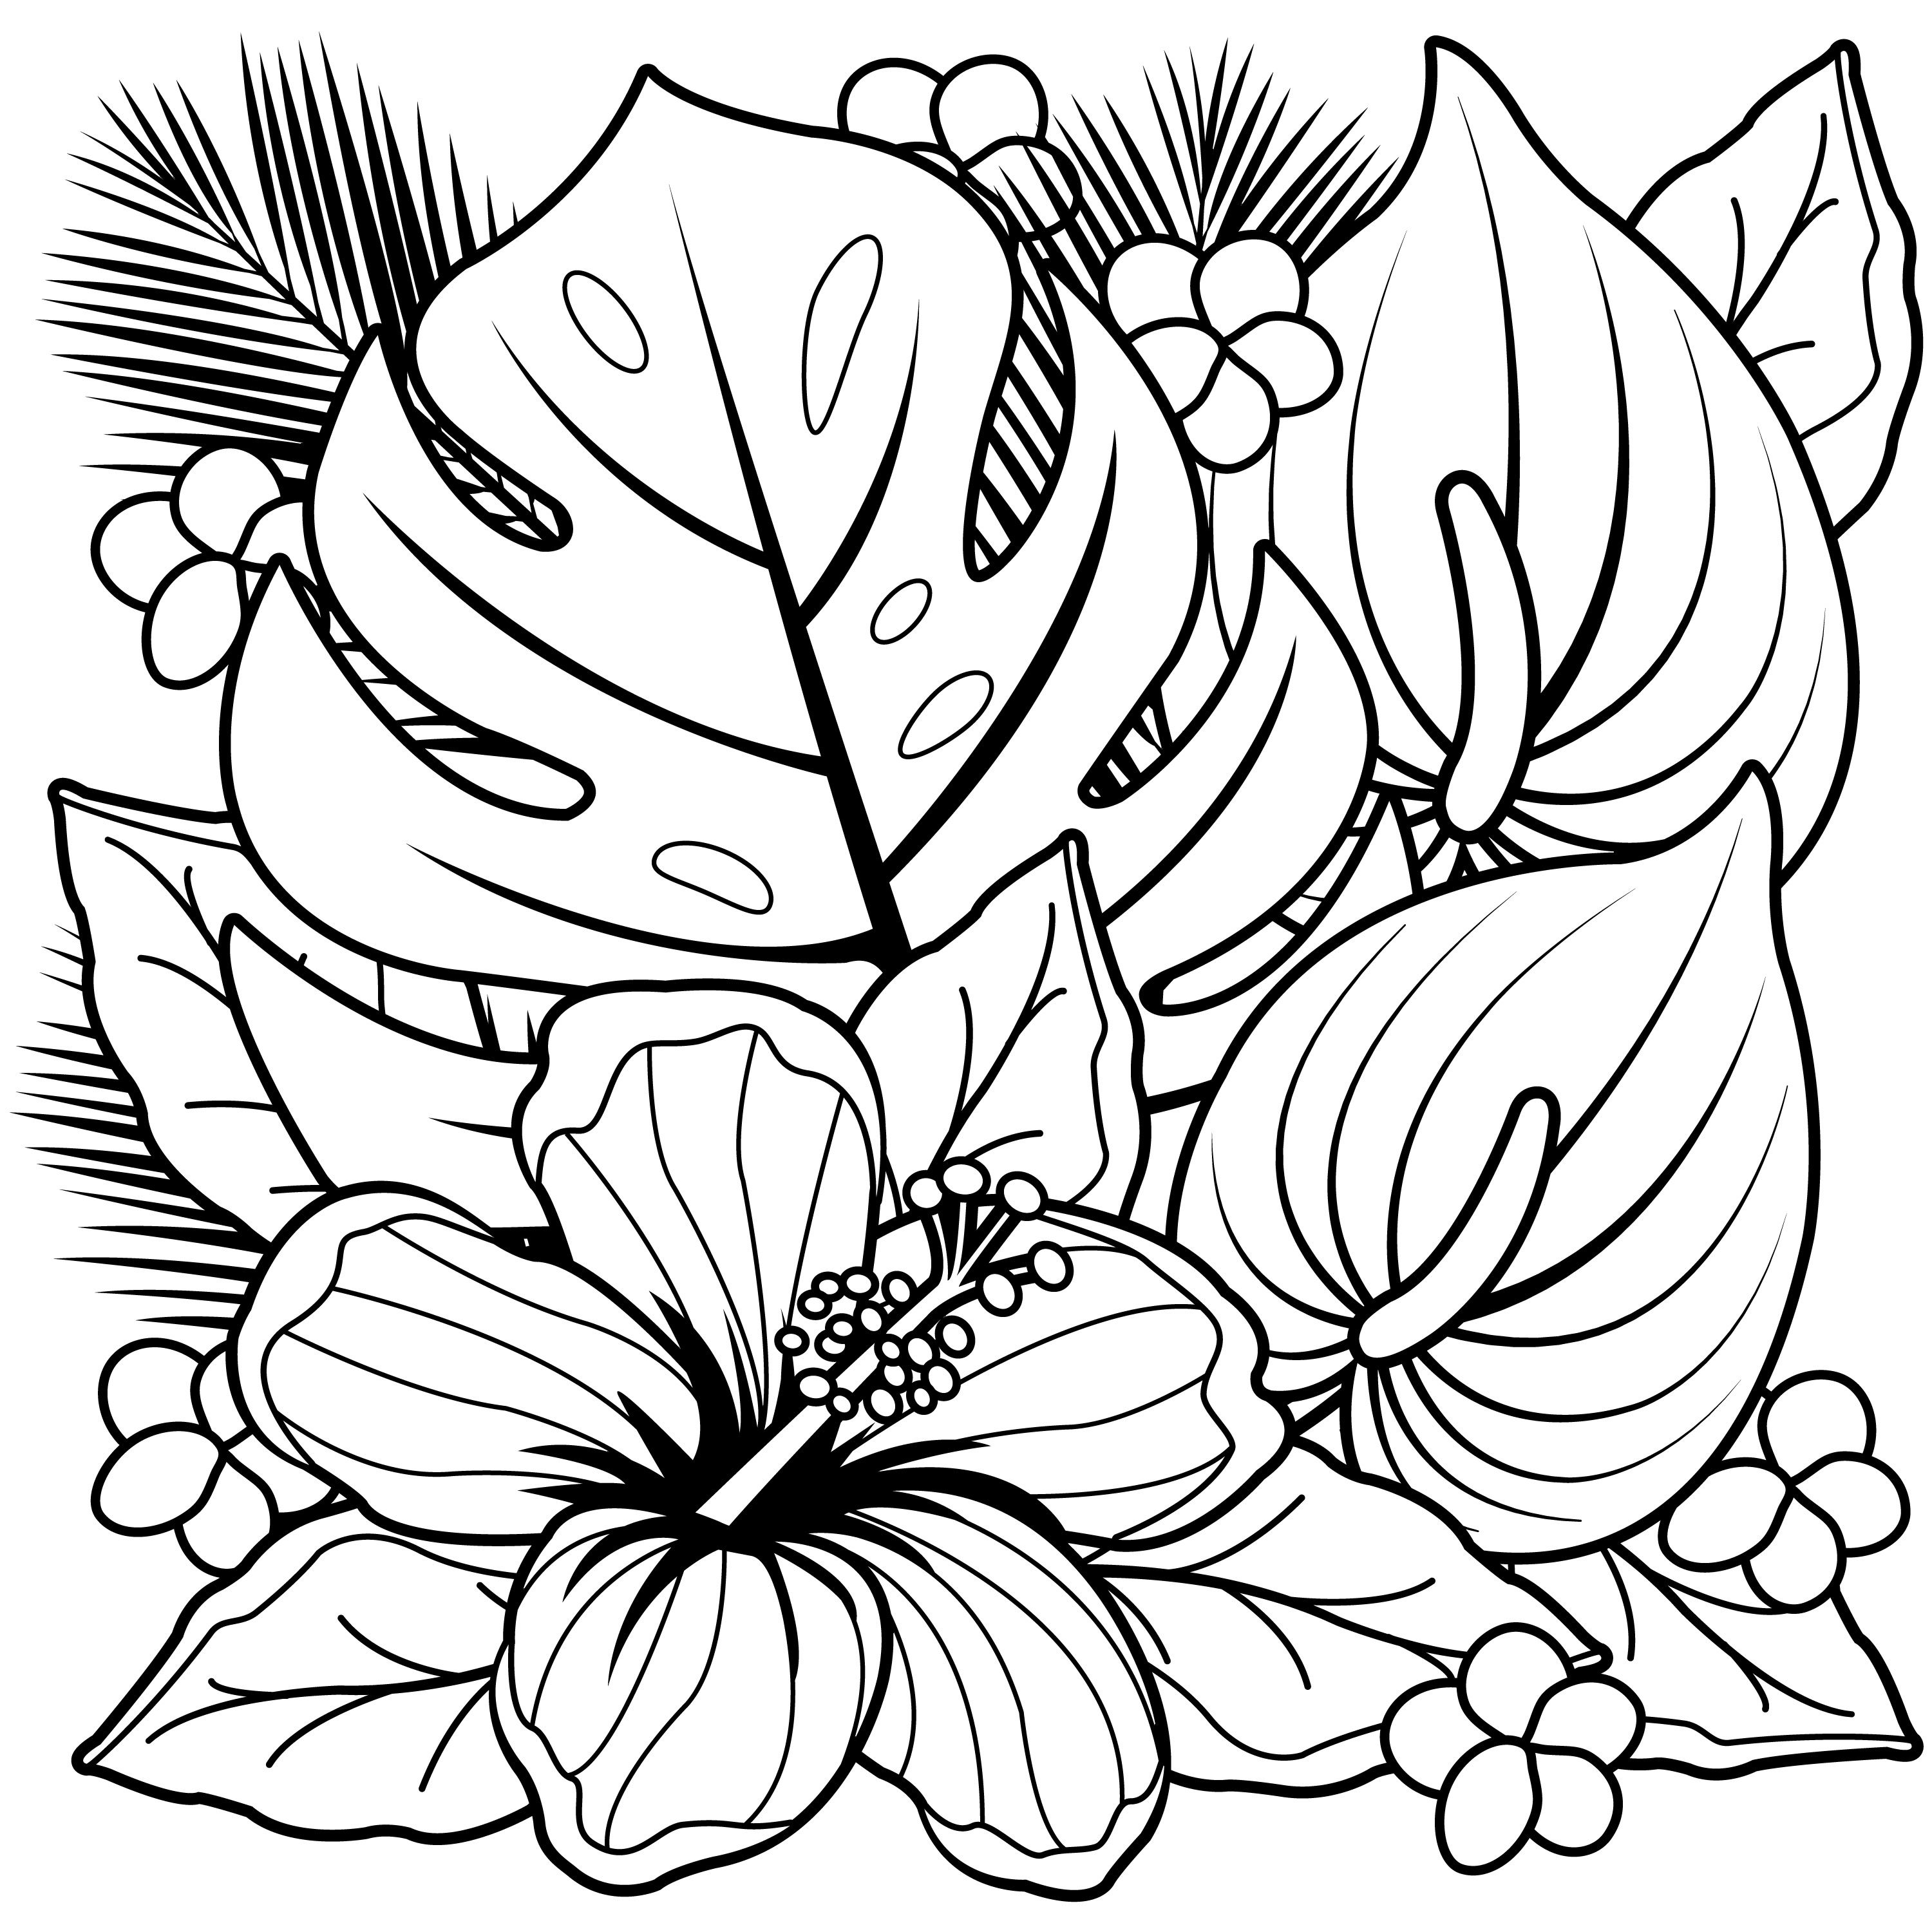 Pin by Marlee Klesner on Coloring pages  Printable flower